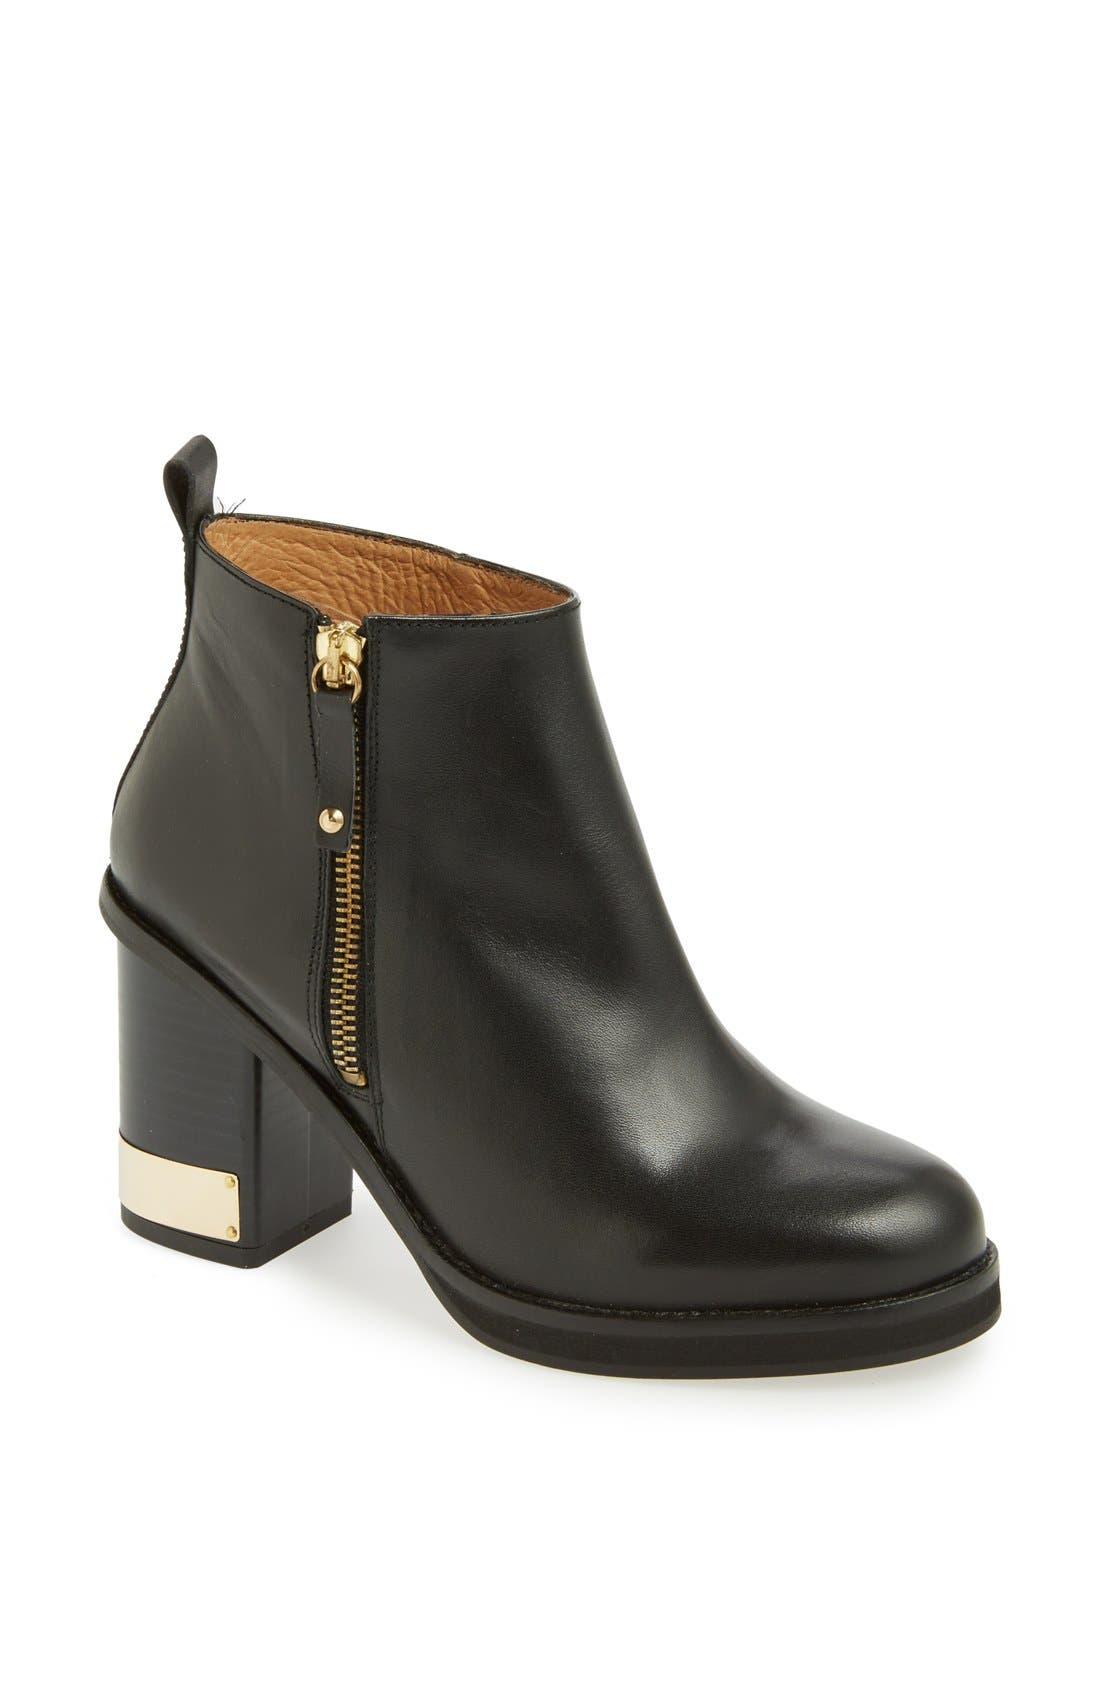 Alternate Image 1 Selected - Topshop 'All Ours' Ankle Boot